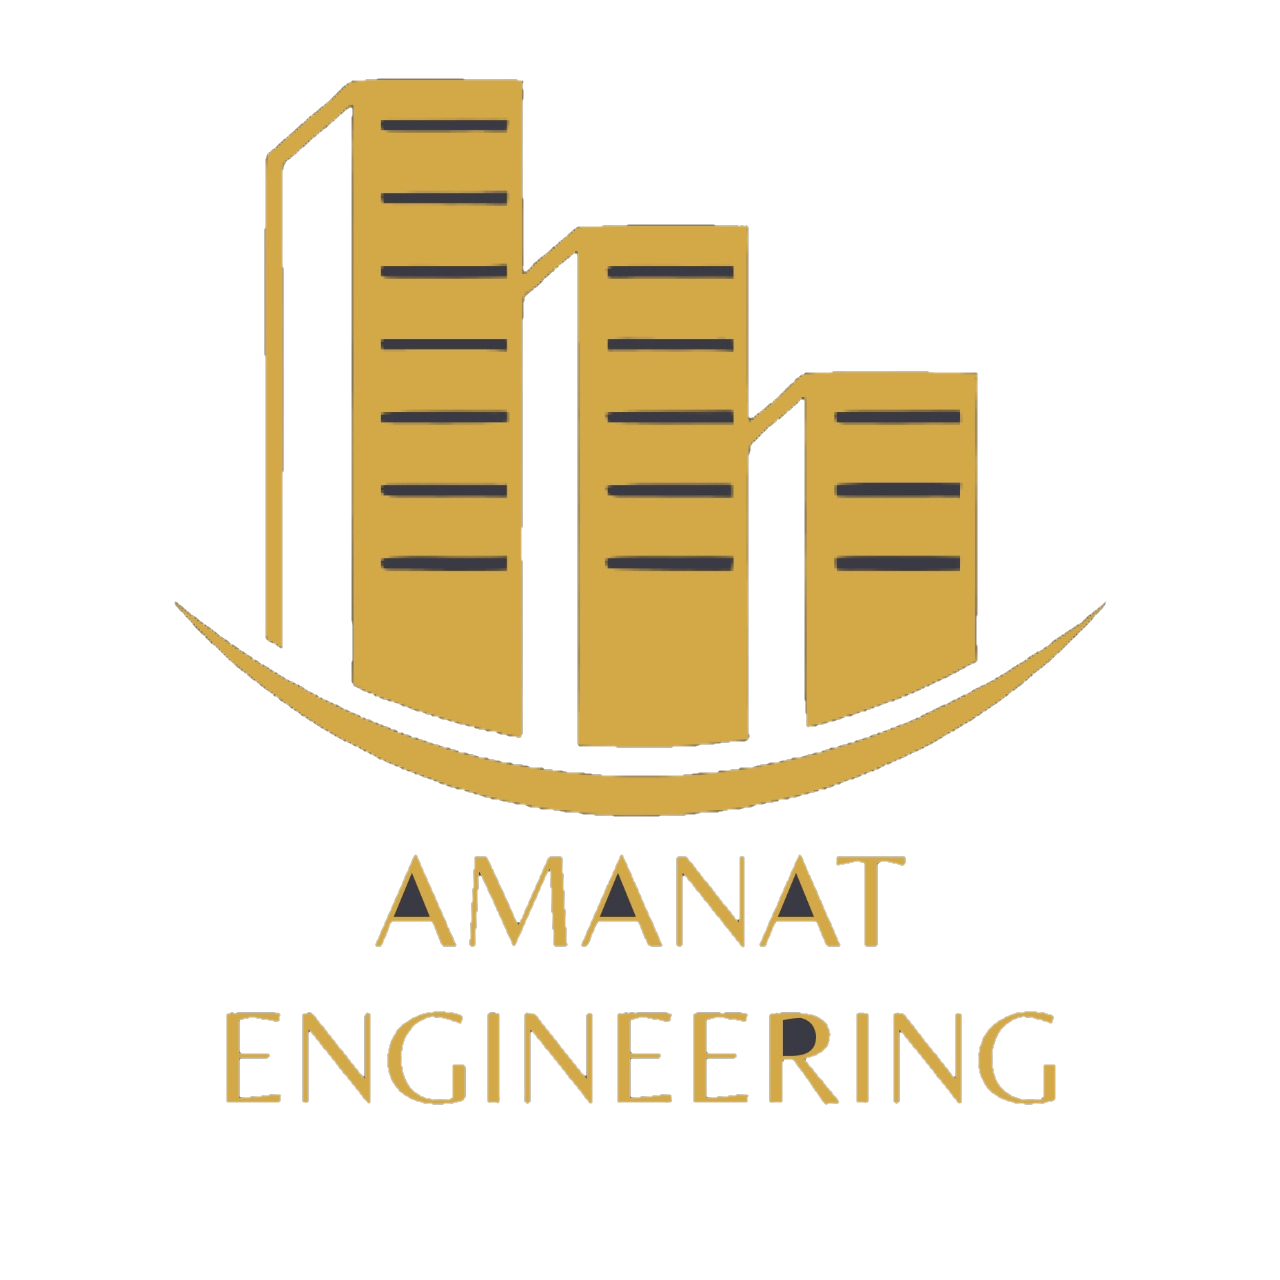 AMANAT ENGINEERING